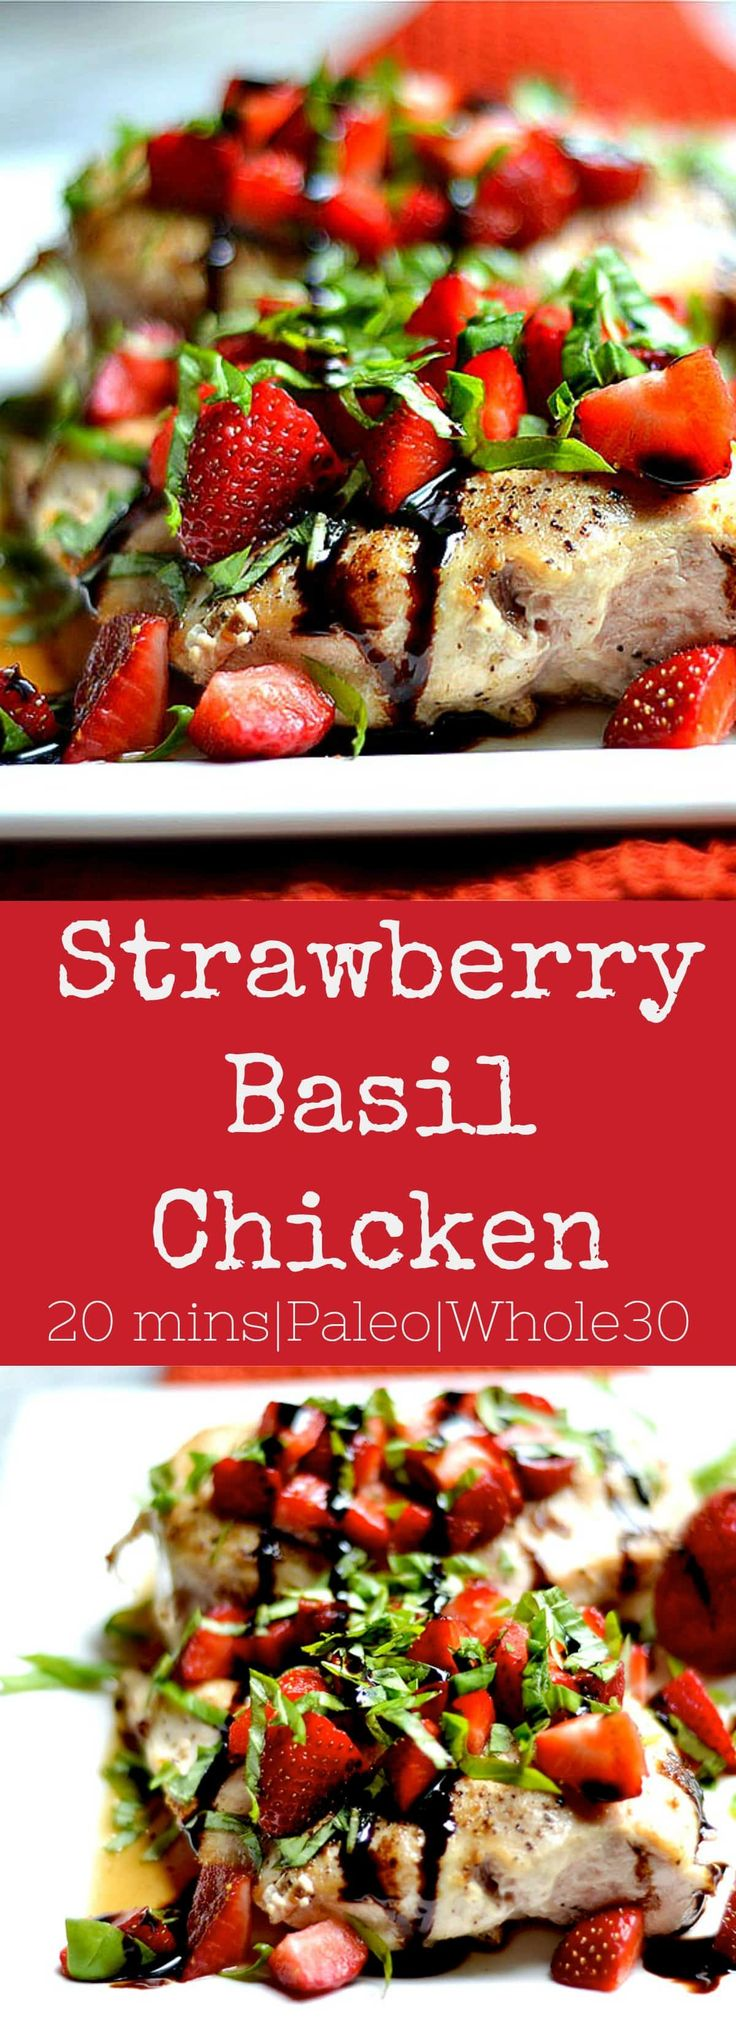 (Omit oil) Strawberry Basil Chicken is a simple dish bursting with tangy basil balsamic flavor! The entire dish comes together in less than 20 minutes, and one that is sure to please even the pickiest of eaters. For Phase 1, skip the oil in the topping, and grill the chicken without oil.